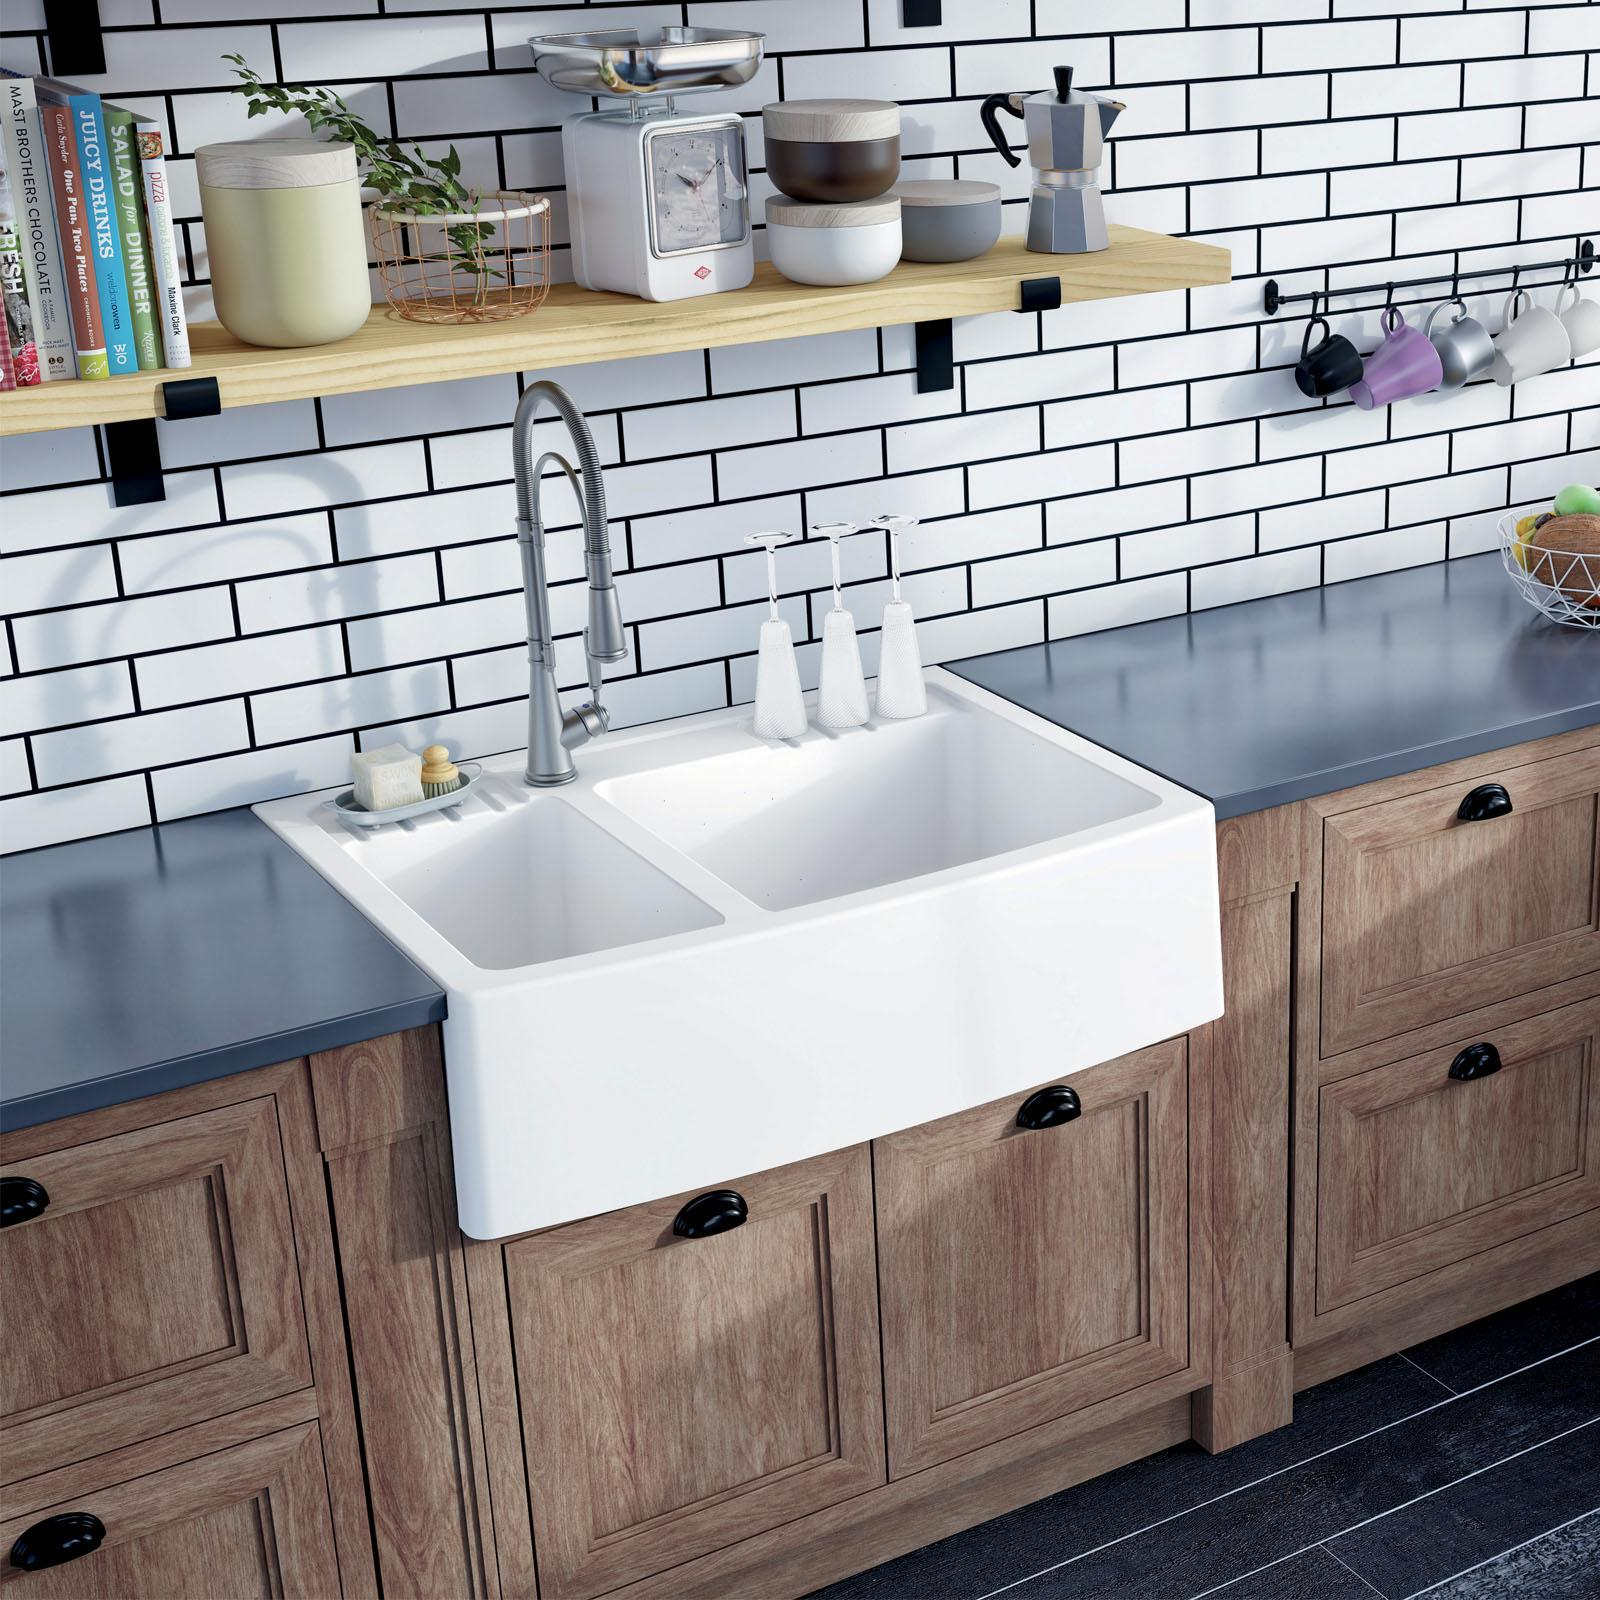 High-quality sink Clotaire III granit white - one and a half bowl - ambience